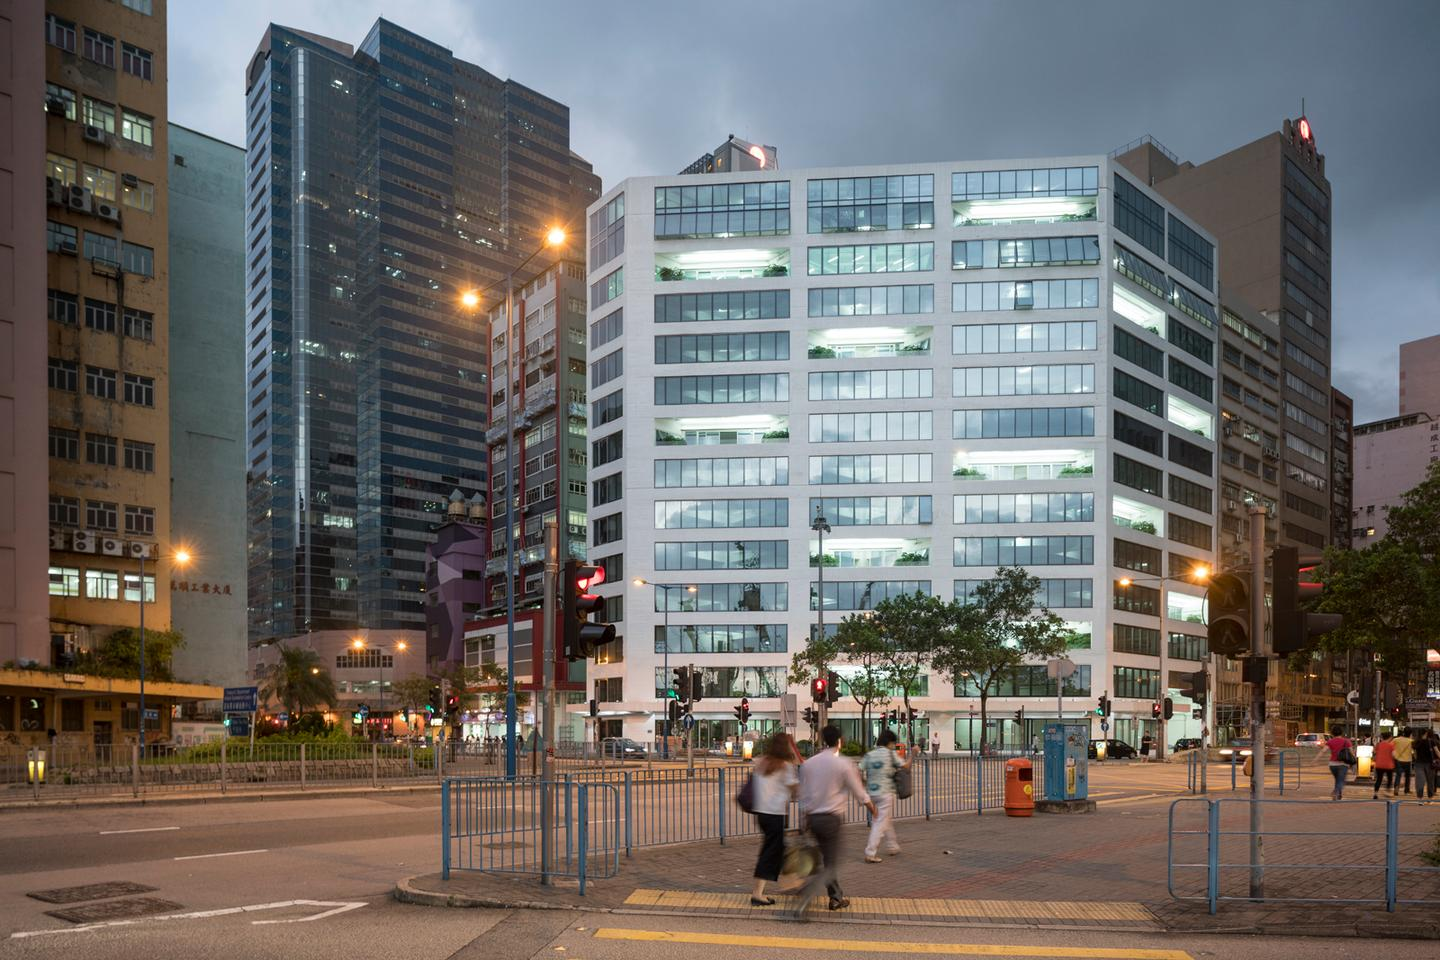 The project is located in East Kowloon,  Hong Kong